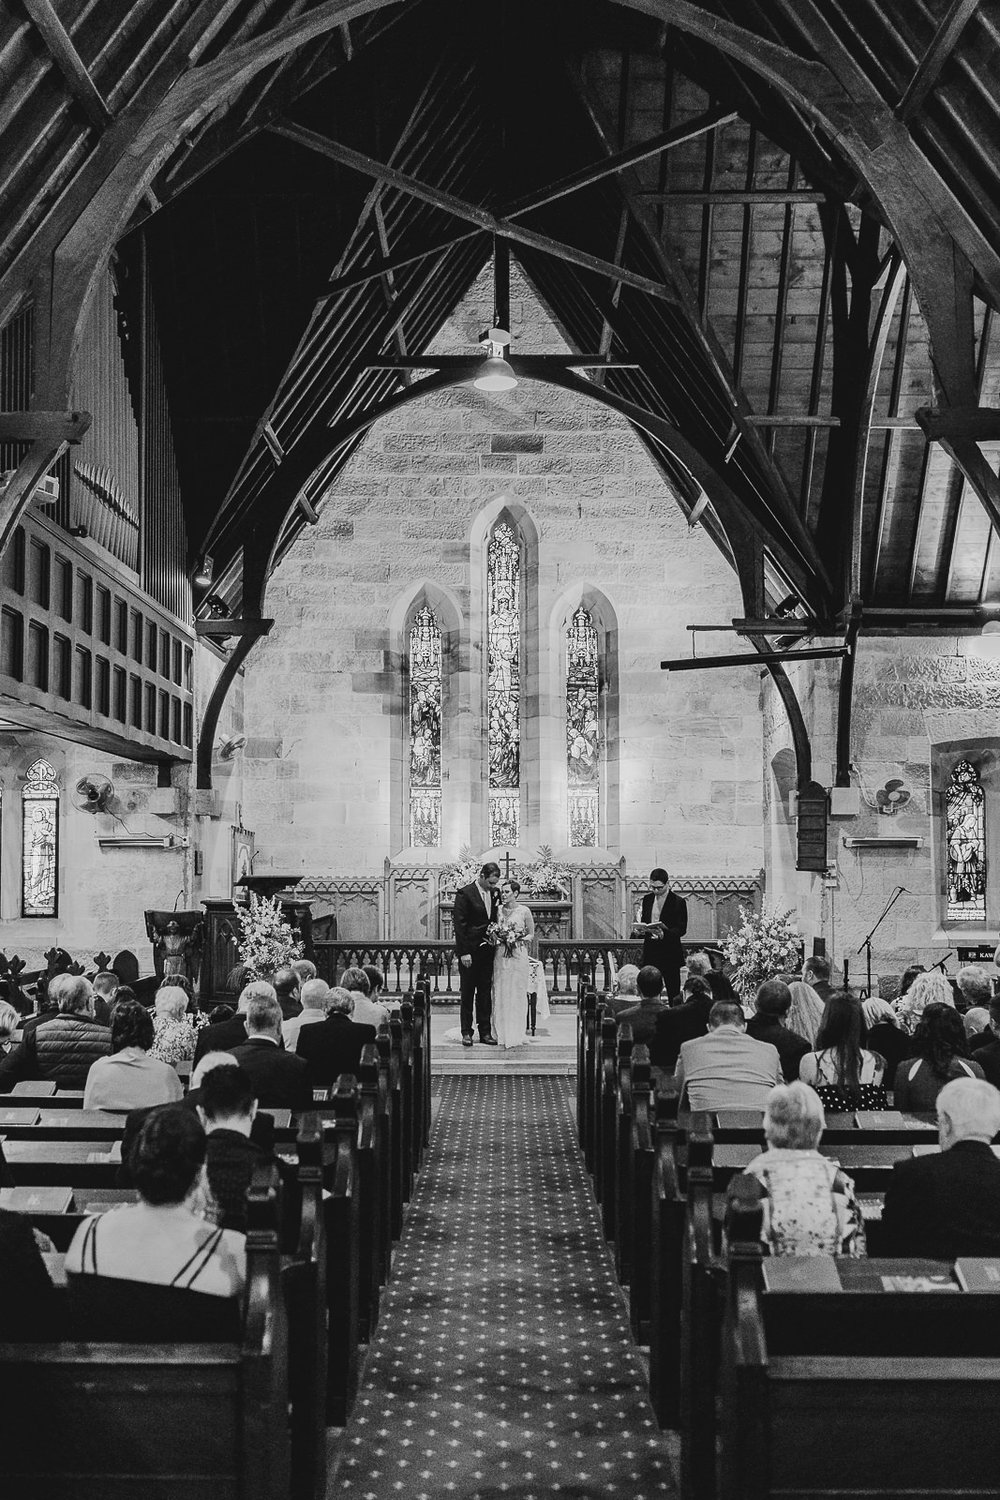 20170909 - Megan & Dave Wedding 167-2.jpg